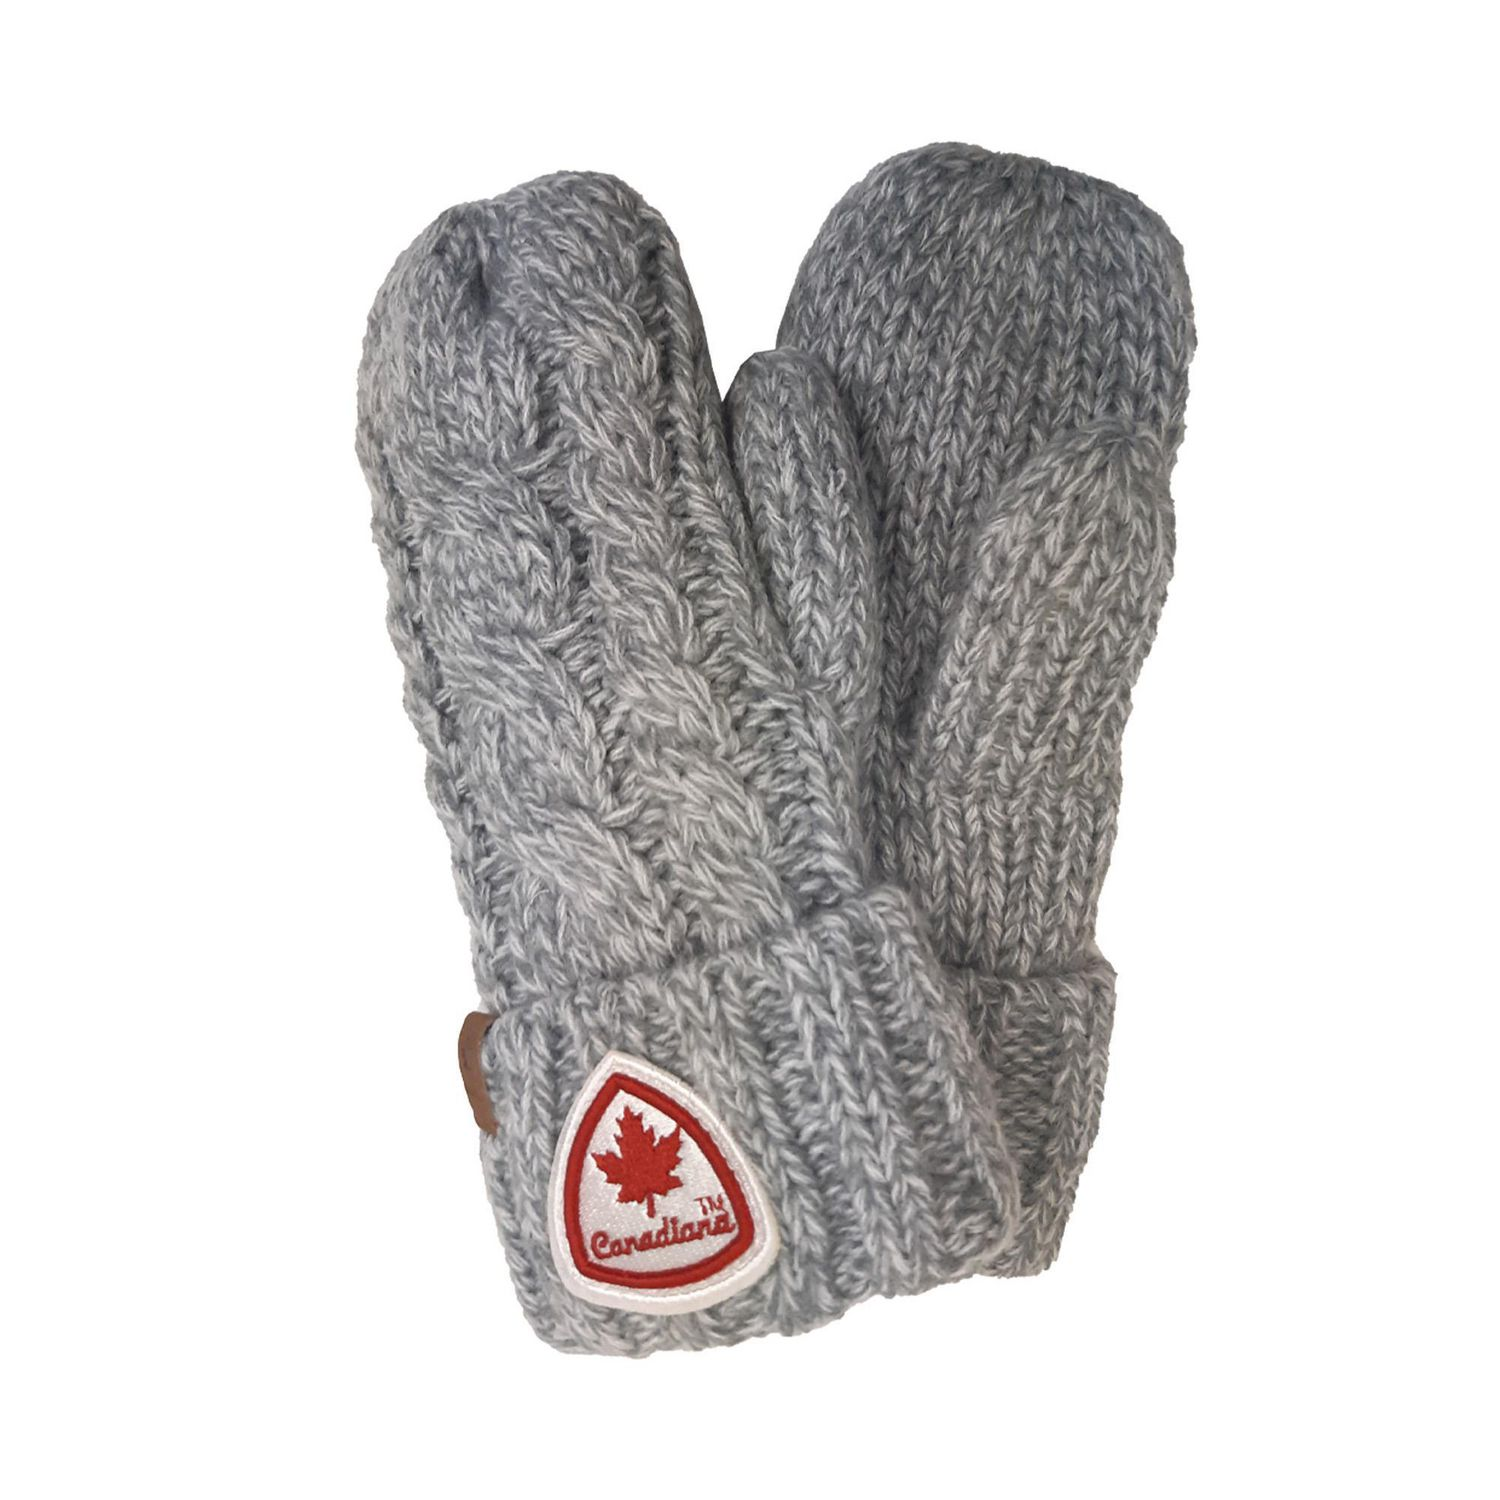 Grey cuffed mittens with sherpa lining and Canada patch on cuff